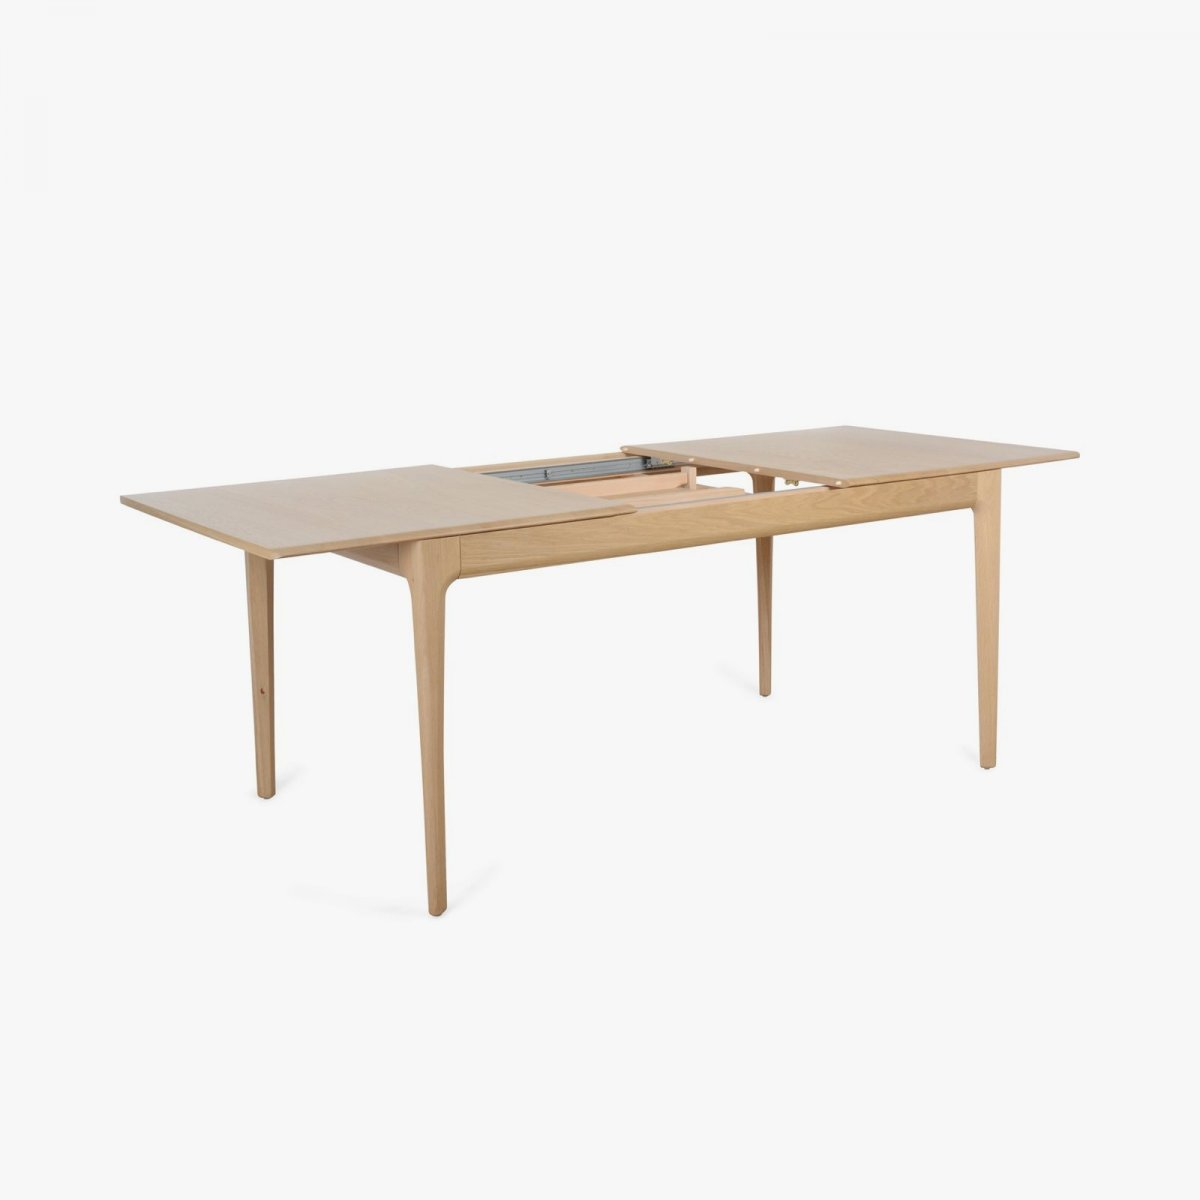 Romana Extending Table, large, extended.